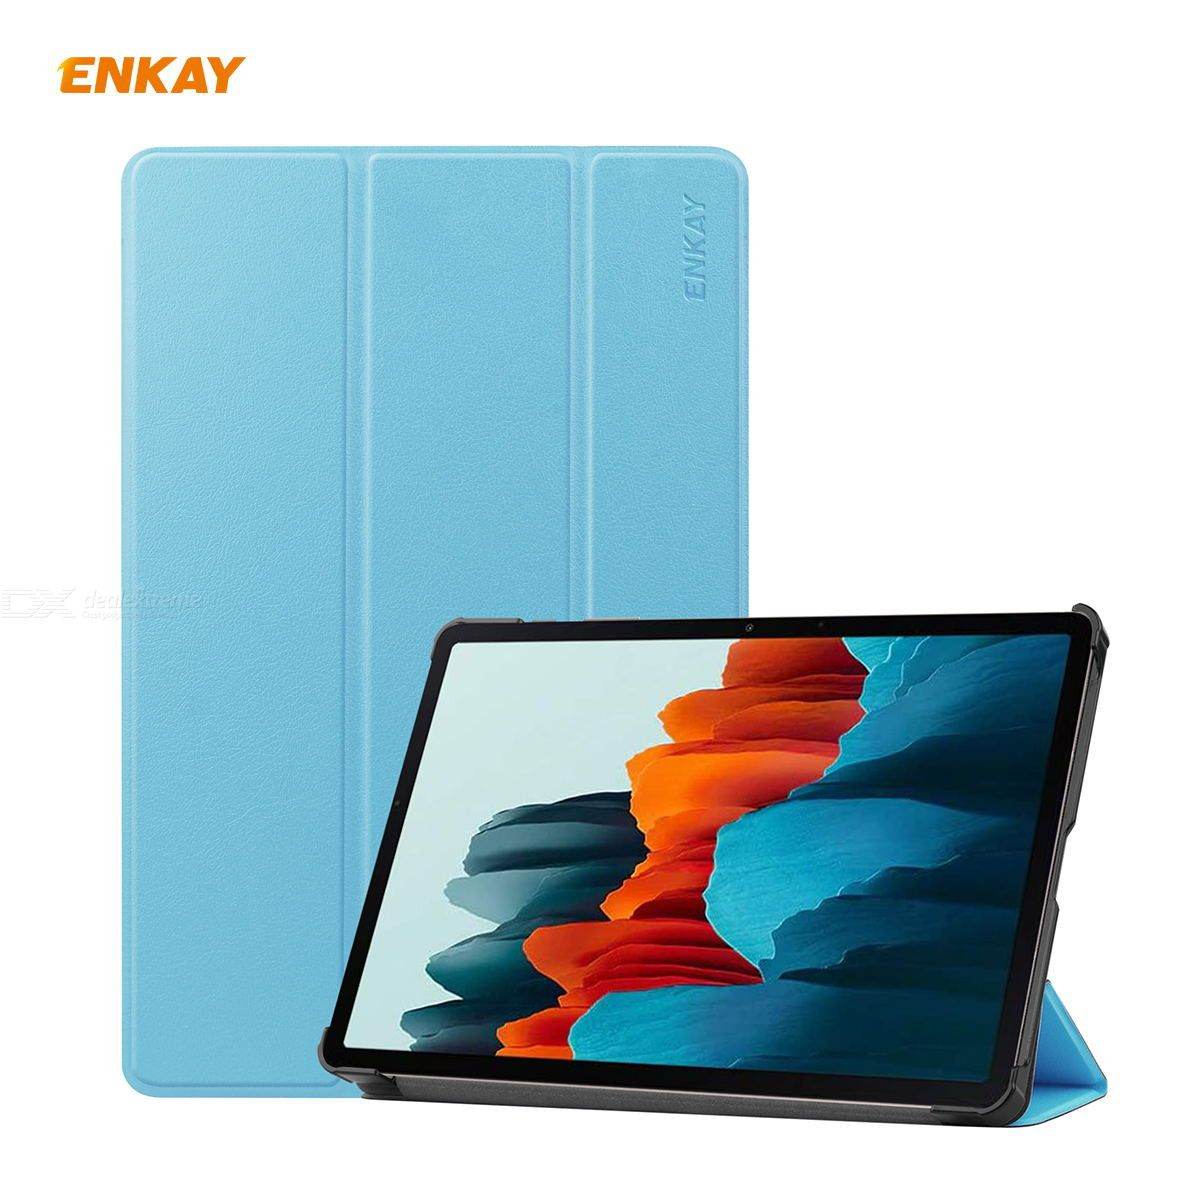 Enkay Enk-8010 High Quality Pu Leather + Plastic Smart Case With Three-folding Holder For Samsung Galaxy Tab S7 11.0 T870 / T875